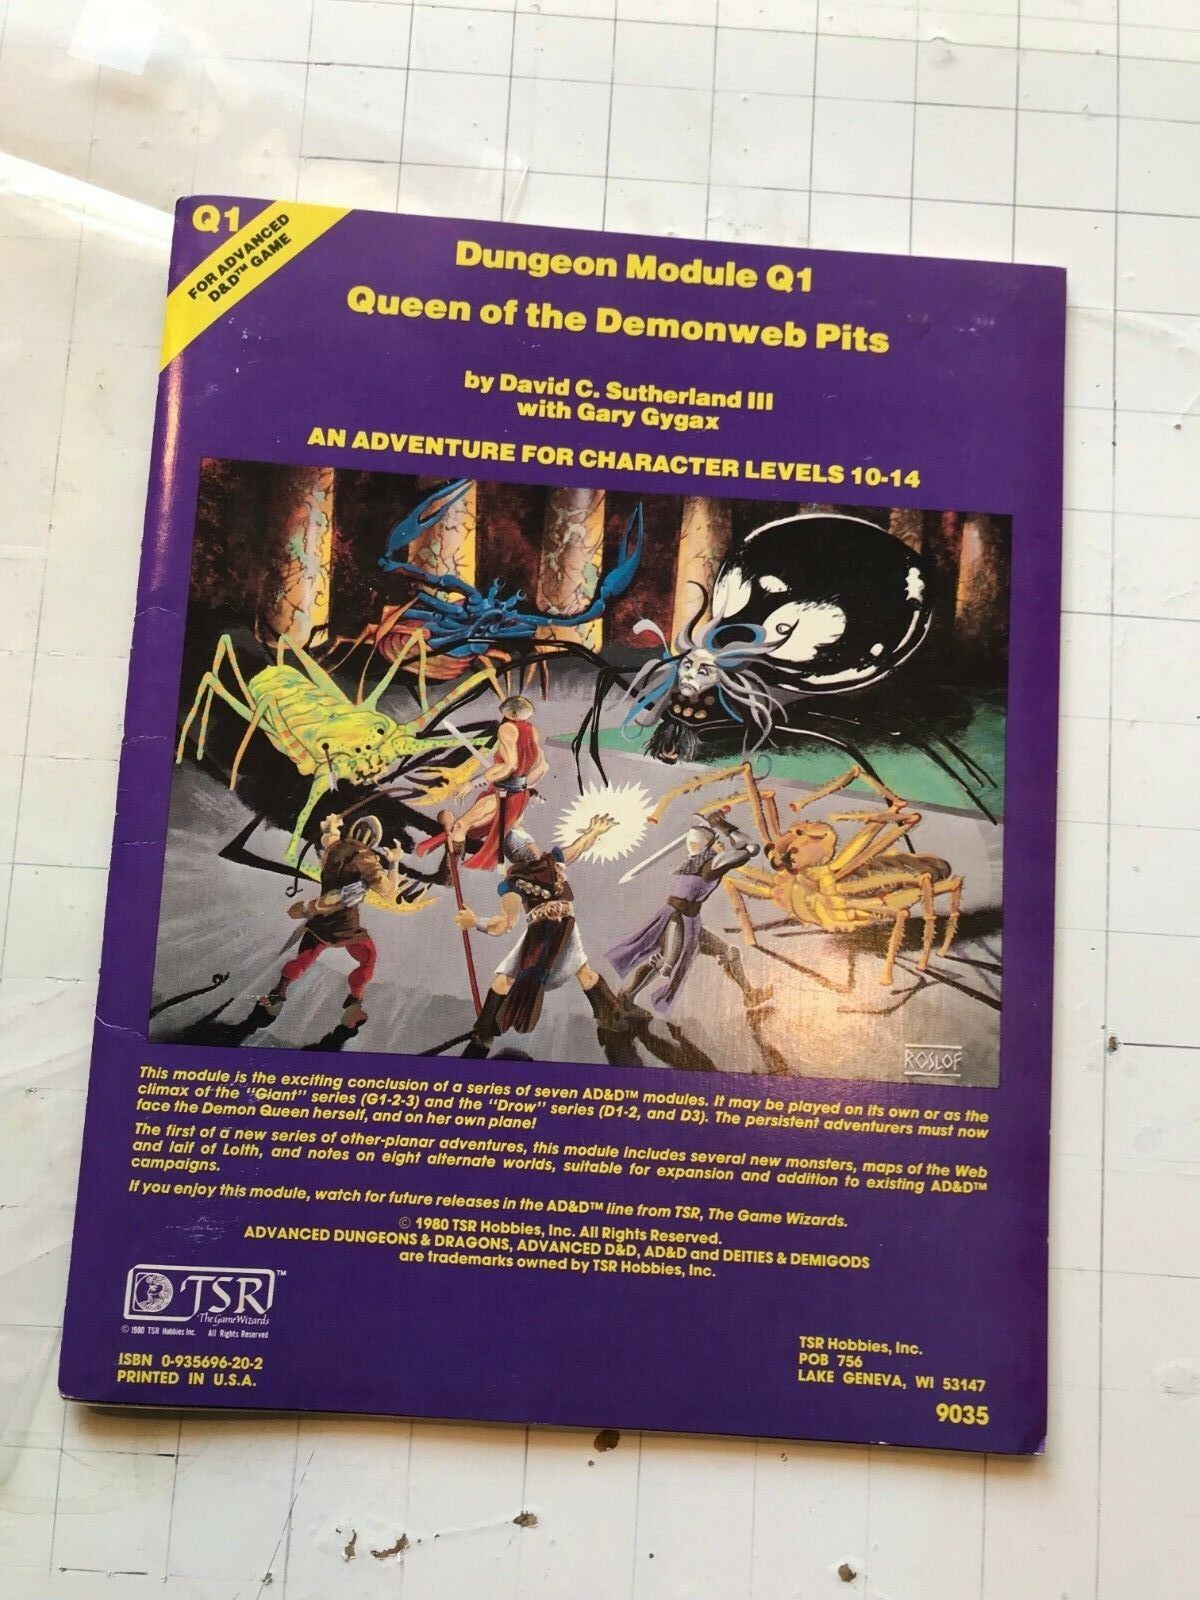 TSR AD&D 1980 Queen of the Demonweb Pits 3rd Print 1981 Q1 gary gygax module d&d